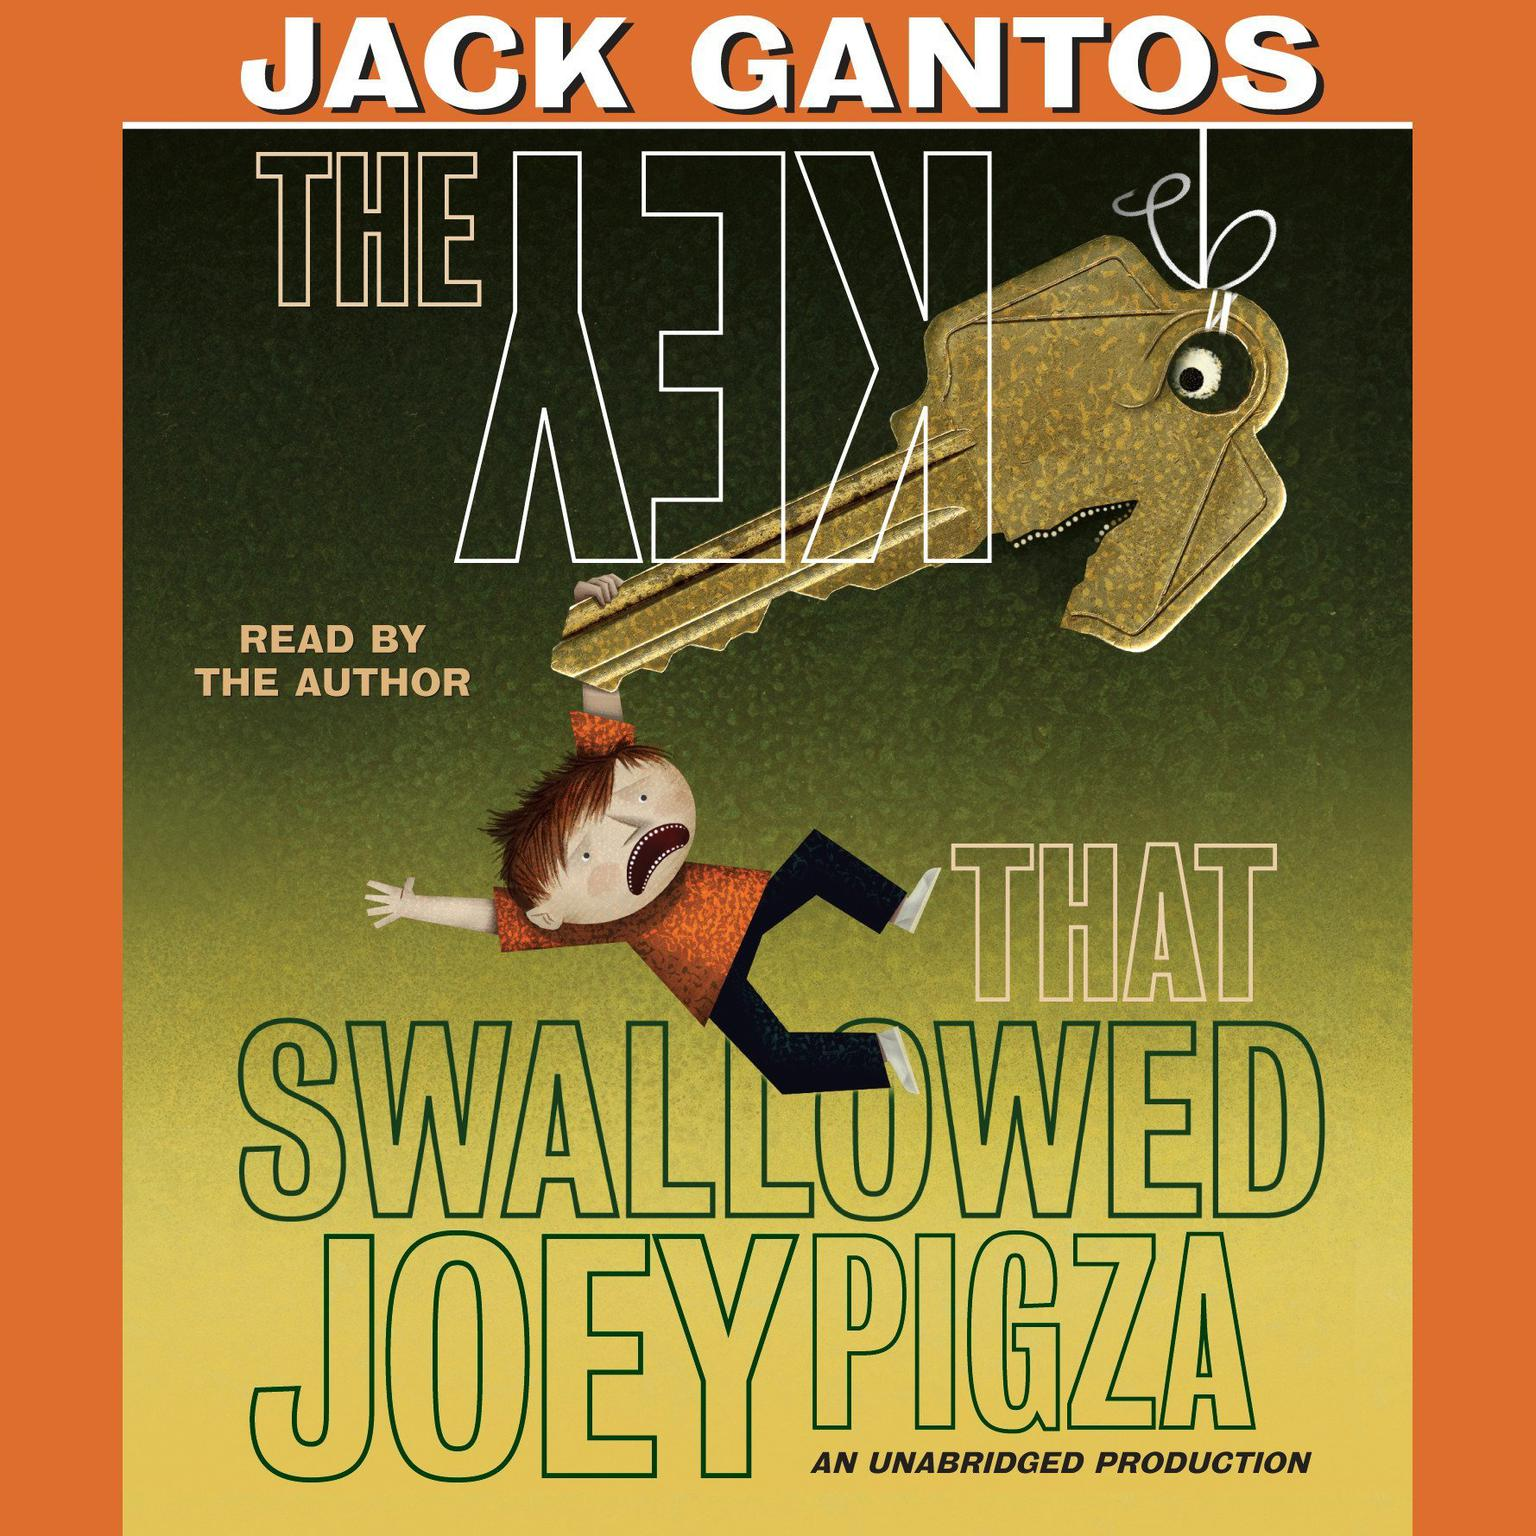 Printable The Key That Swallowed Joey Pigza Audiobook Cover Art